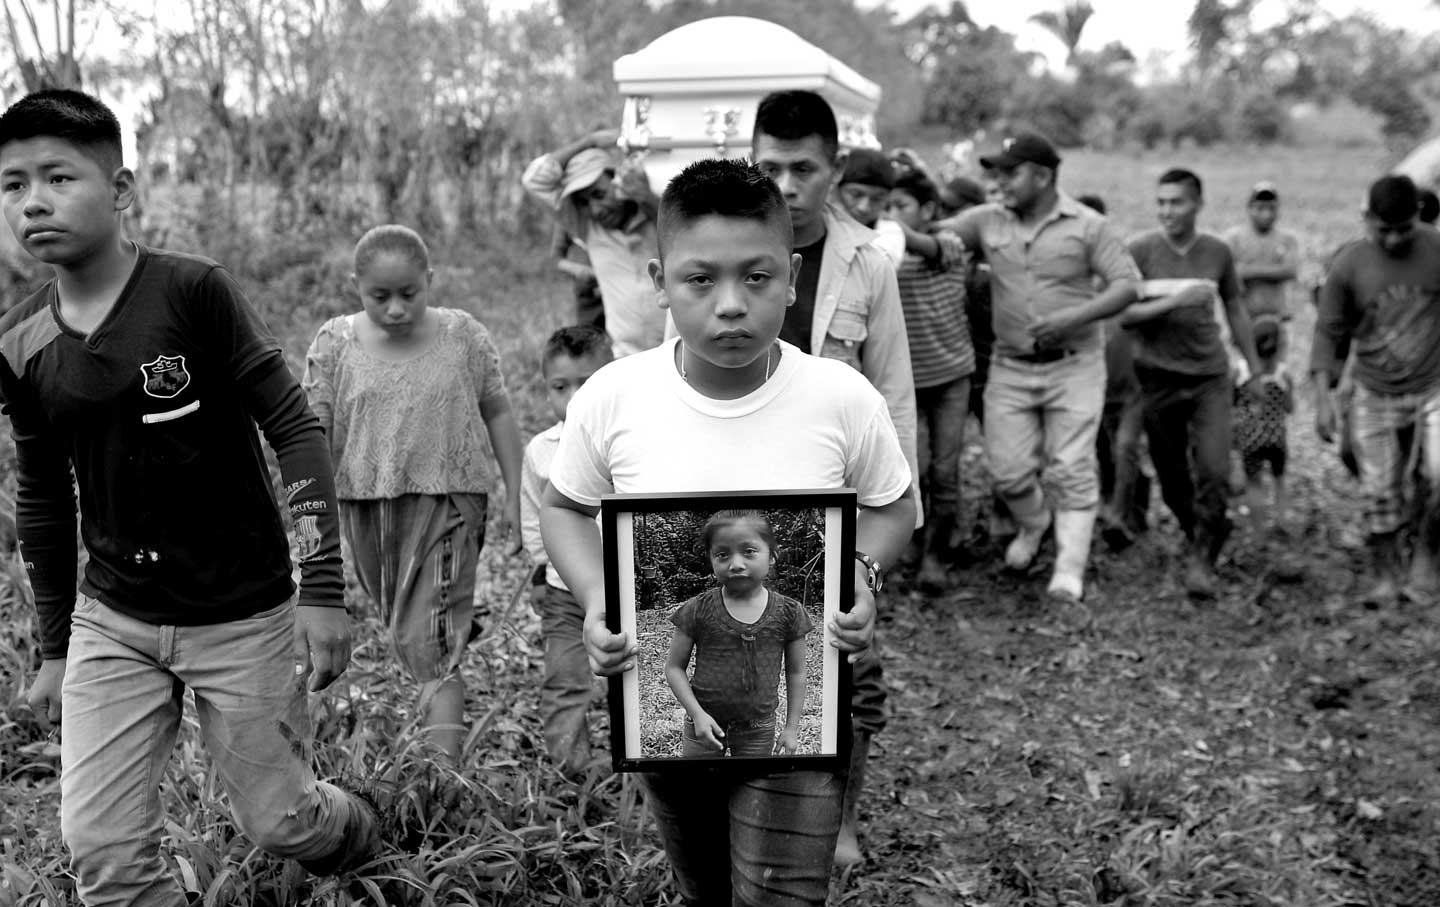 Washington Trained Guatemala's Killers for Decades | The Nation